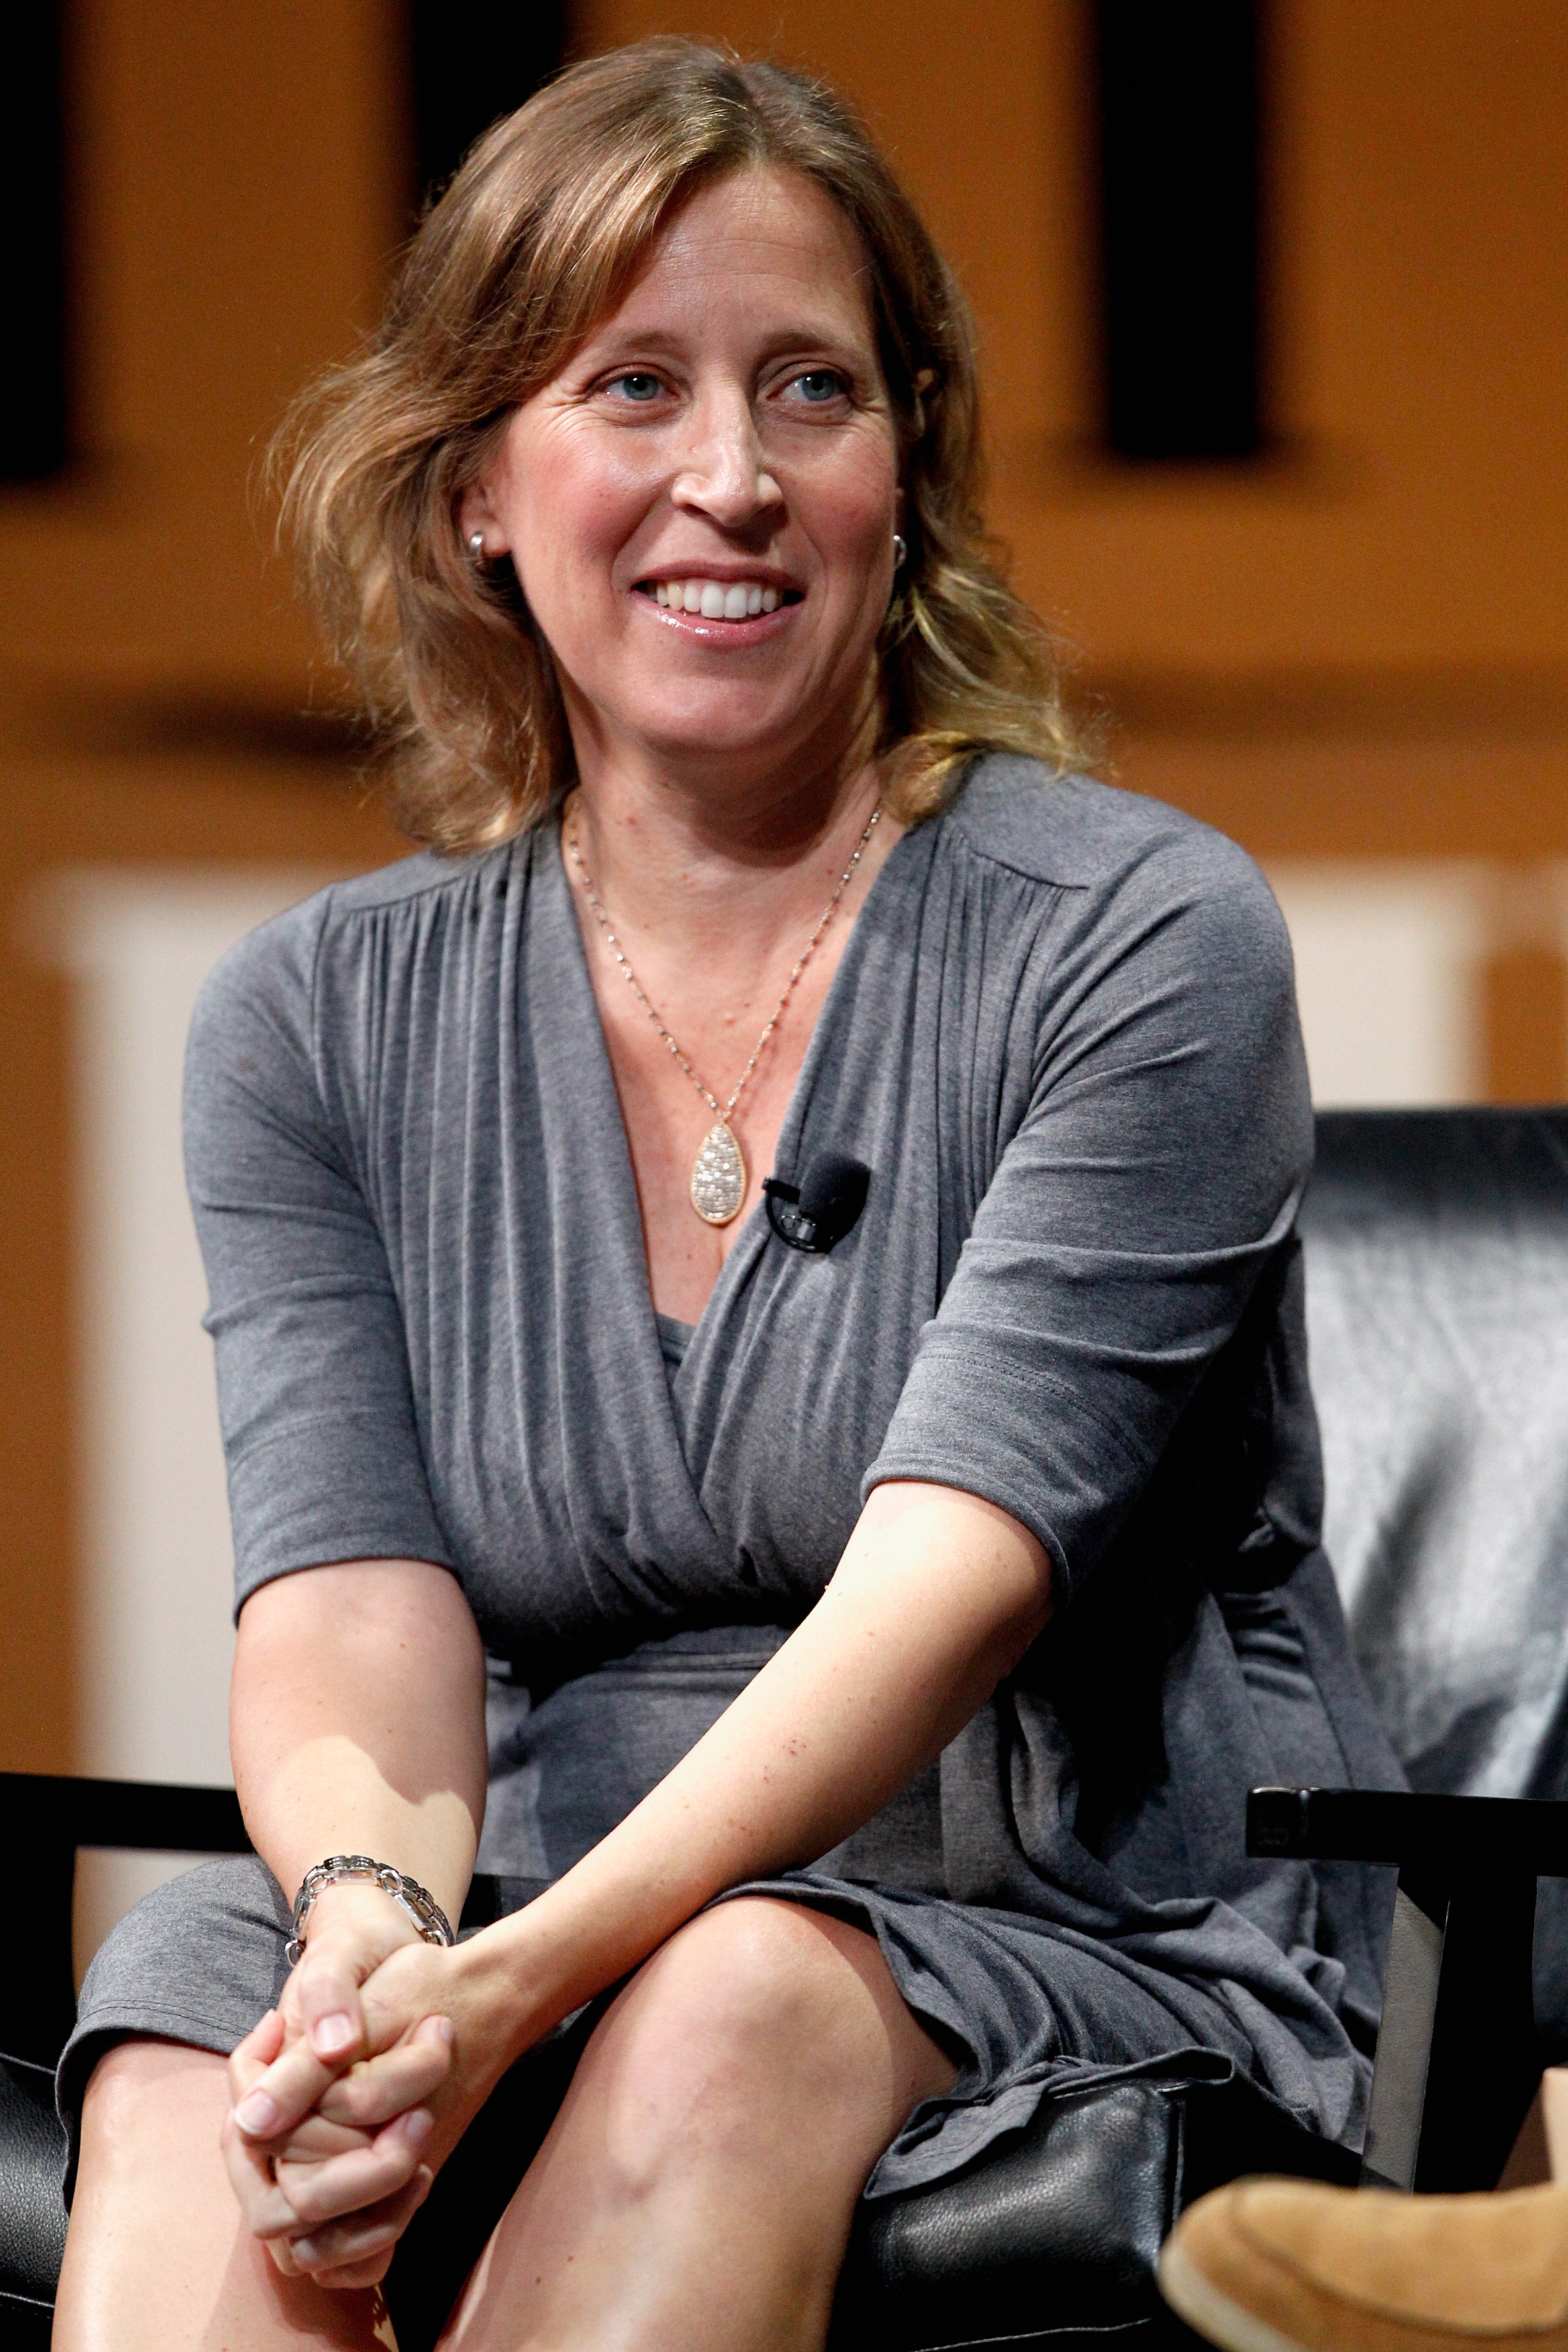 Youtube CEO Susan Wojcicki speak onstage during  Who Owns Your Screen?  at the Vanity Fair New Establishment Summit on October 9, 2014 in San Francisco, California.  (Kimberly White--Getty Images for Vanity Fair)